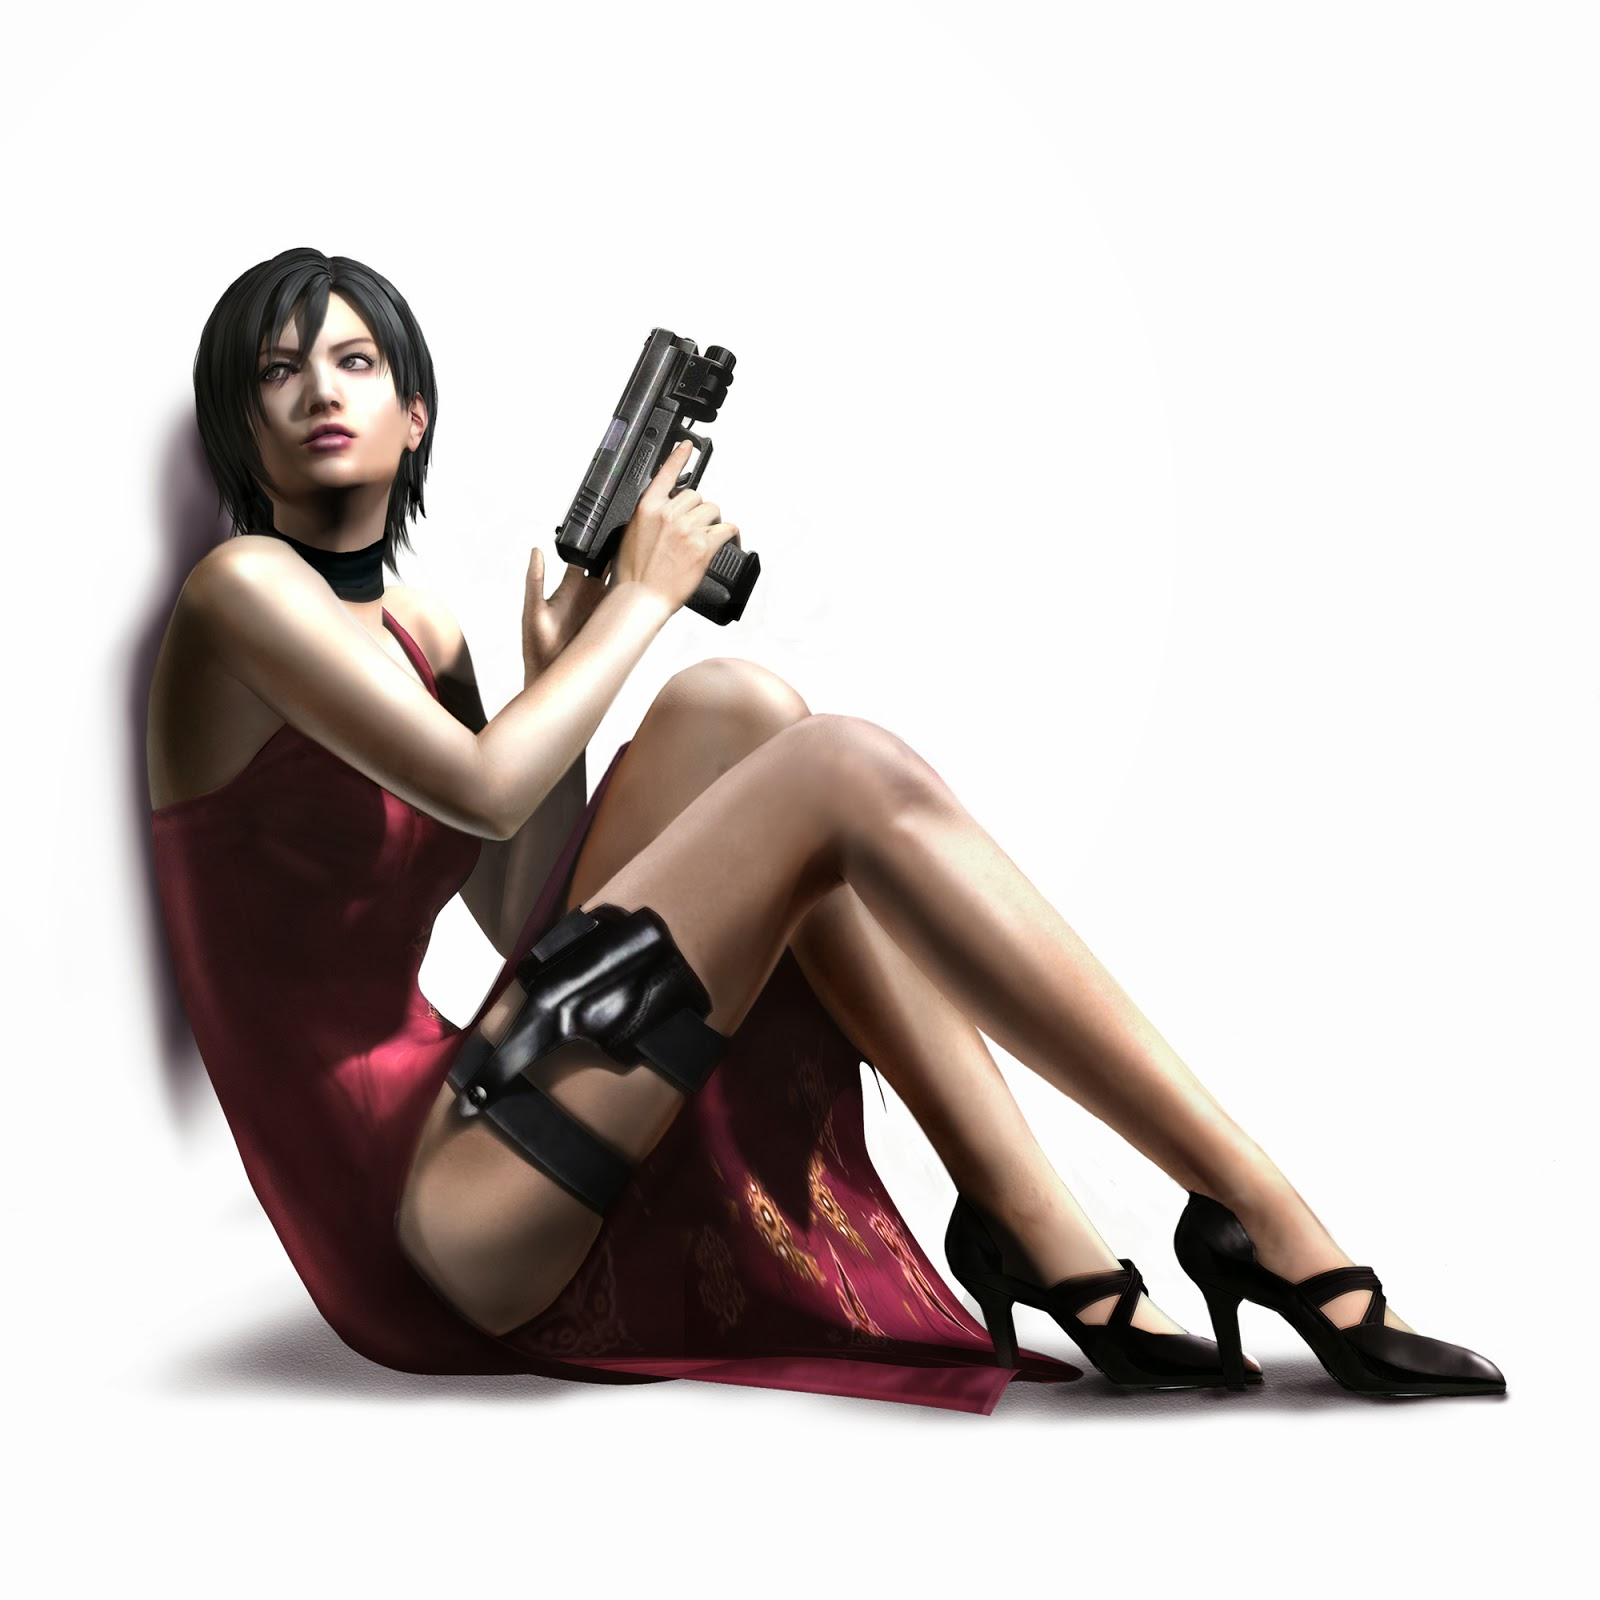 Ada wong resident evil 4 porno photos hardcore movies